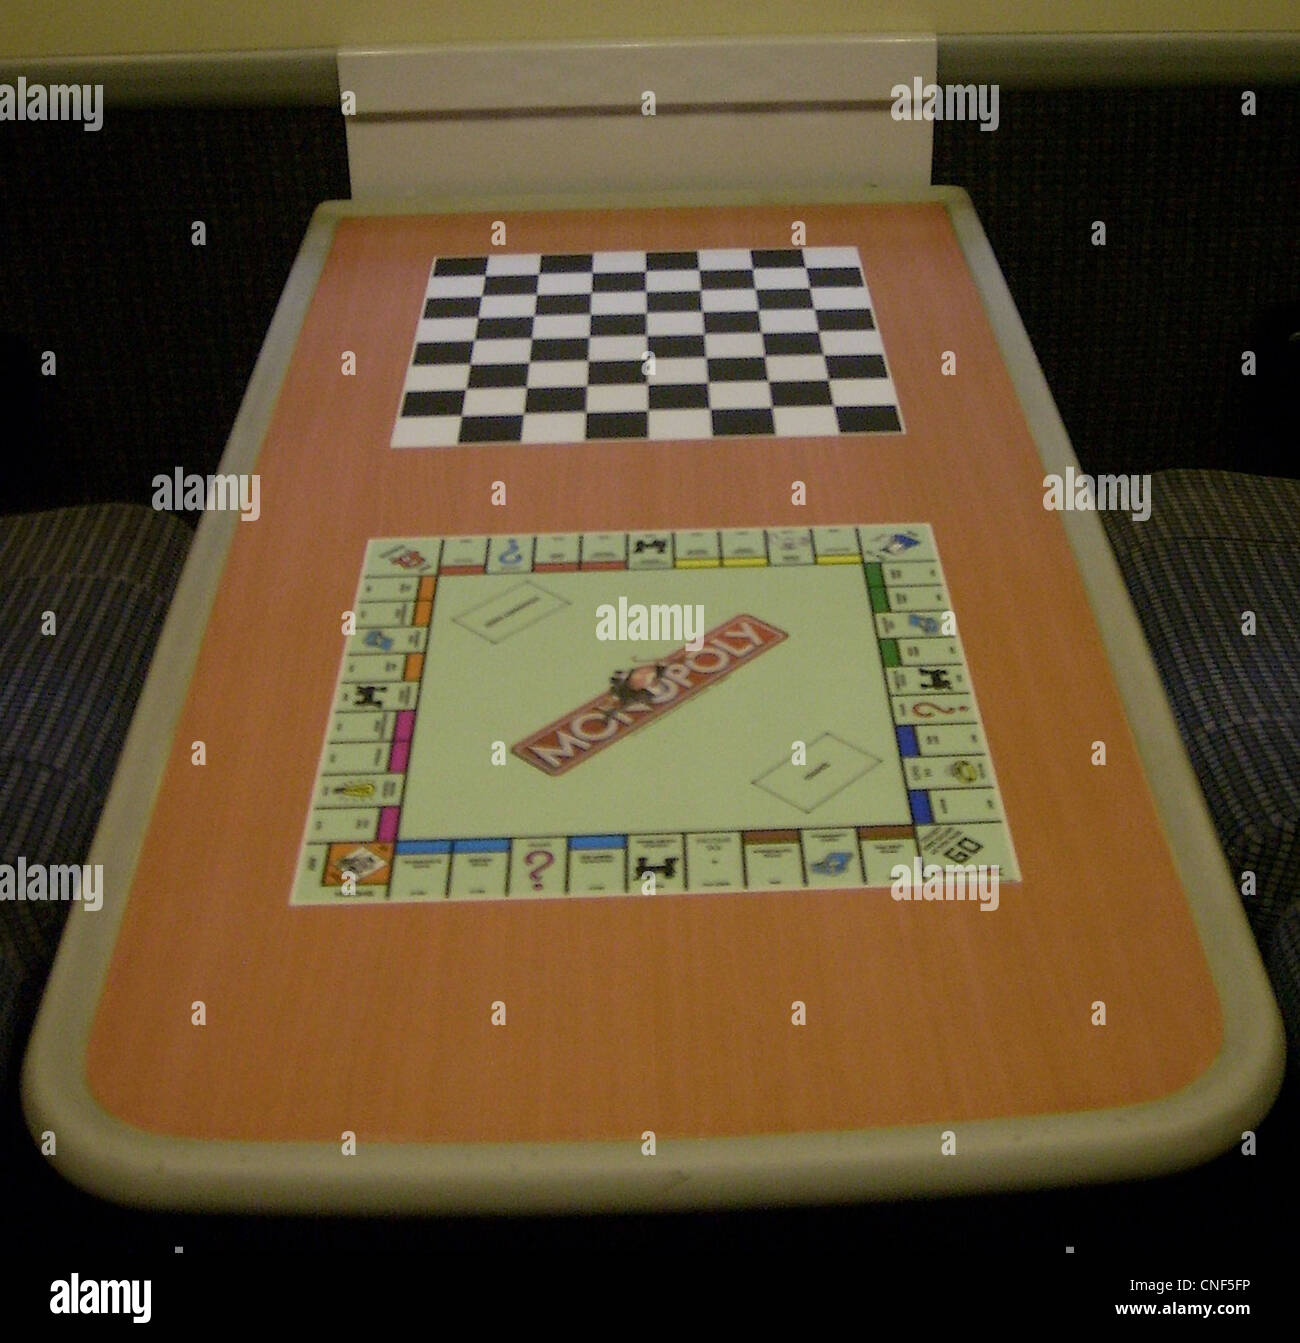 The unique combined Chess and Monopoly game boards on the table top surface - Stock Image